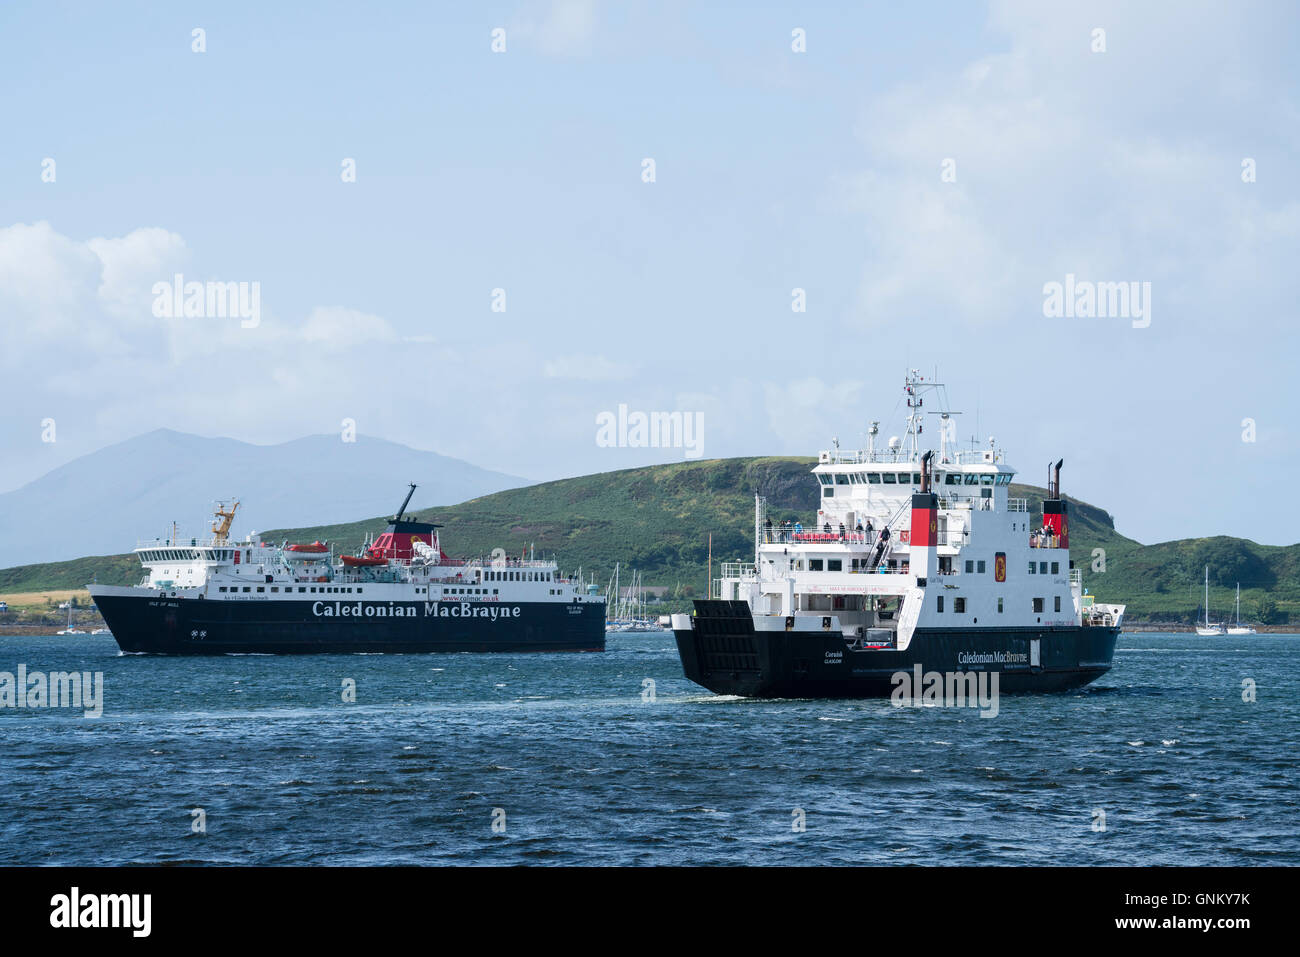 Two passenger ferries operated by Caledonian Macbrayne , Calmac, in Oban harbour in Argyll and Bute , Scotland, Stock Photo